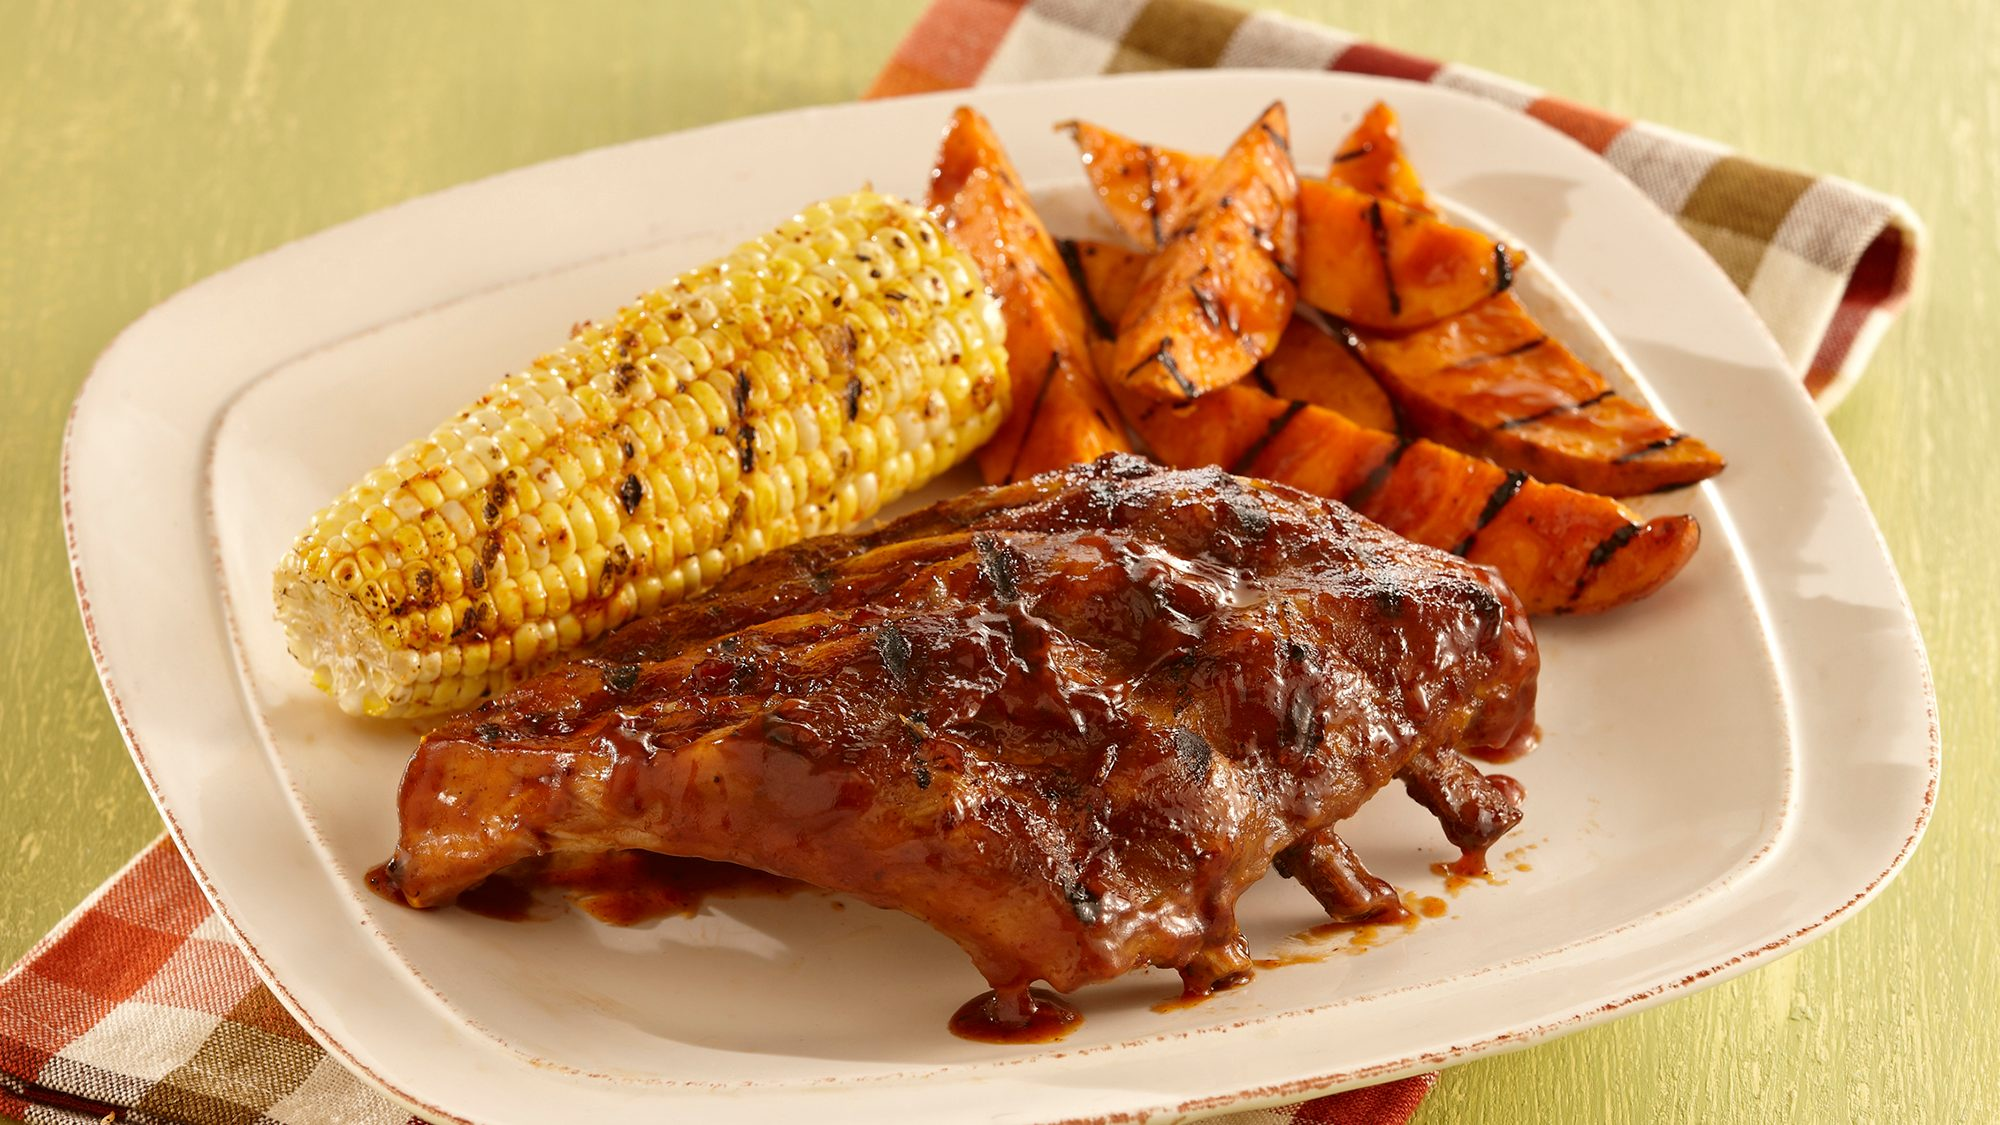 sweet-and-smoky-ribs-with-grilled-sweet-potatoes.jpg